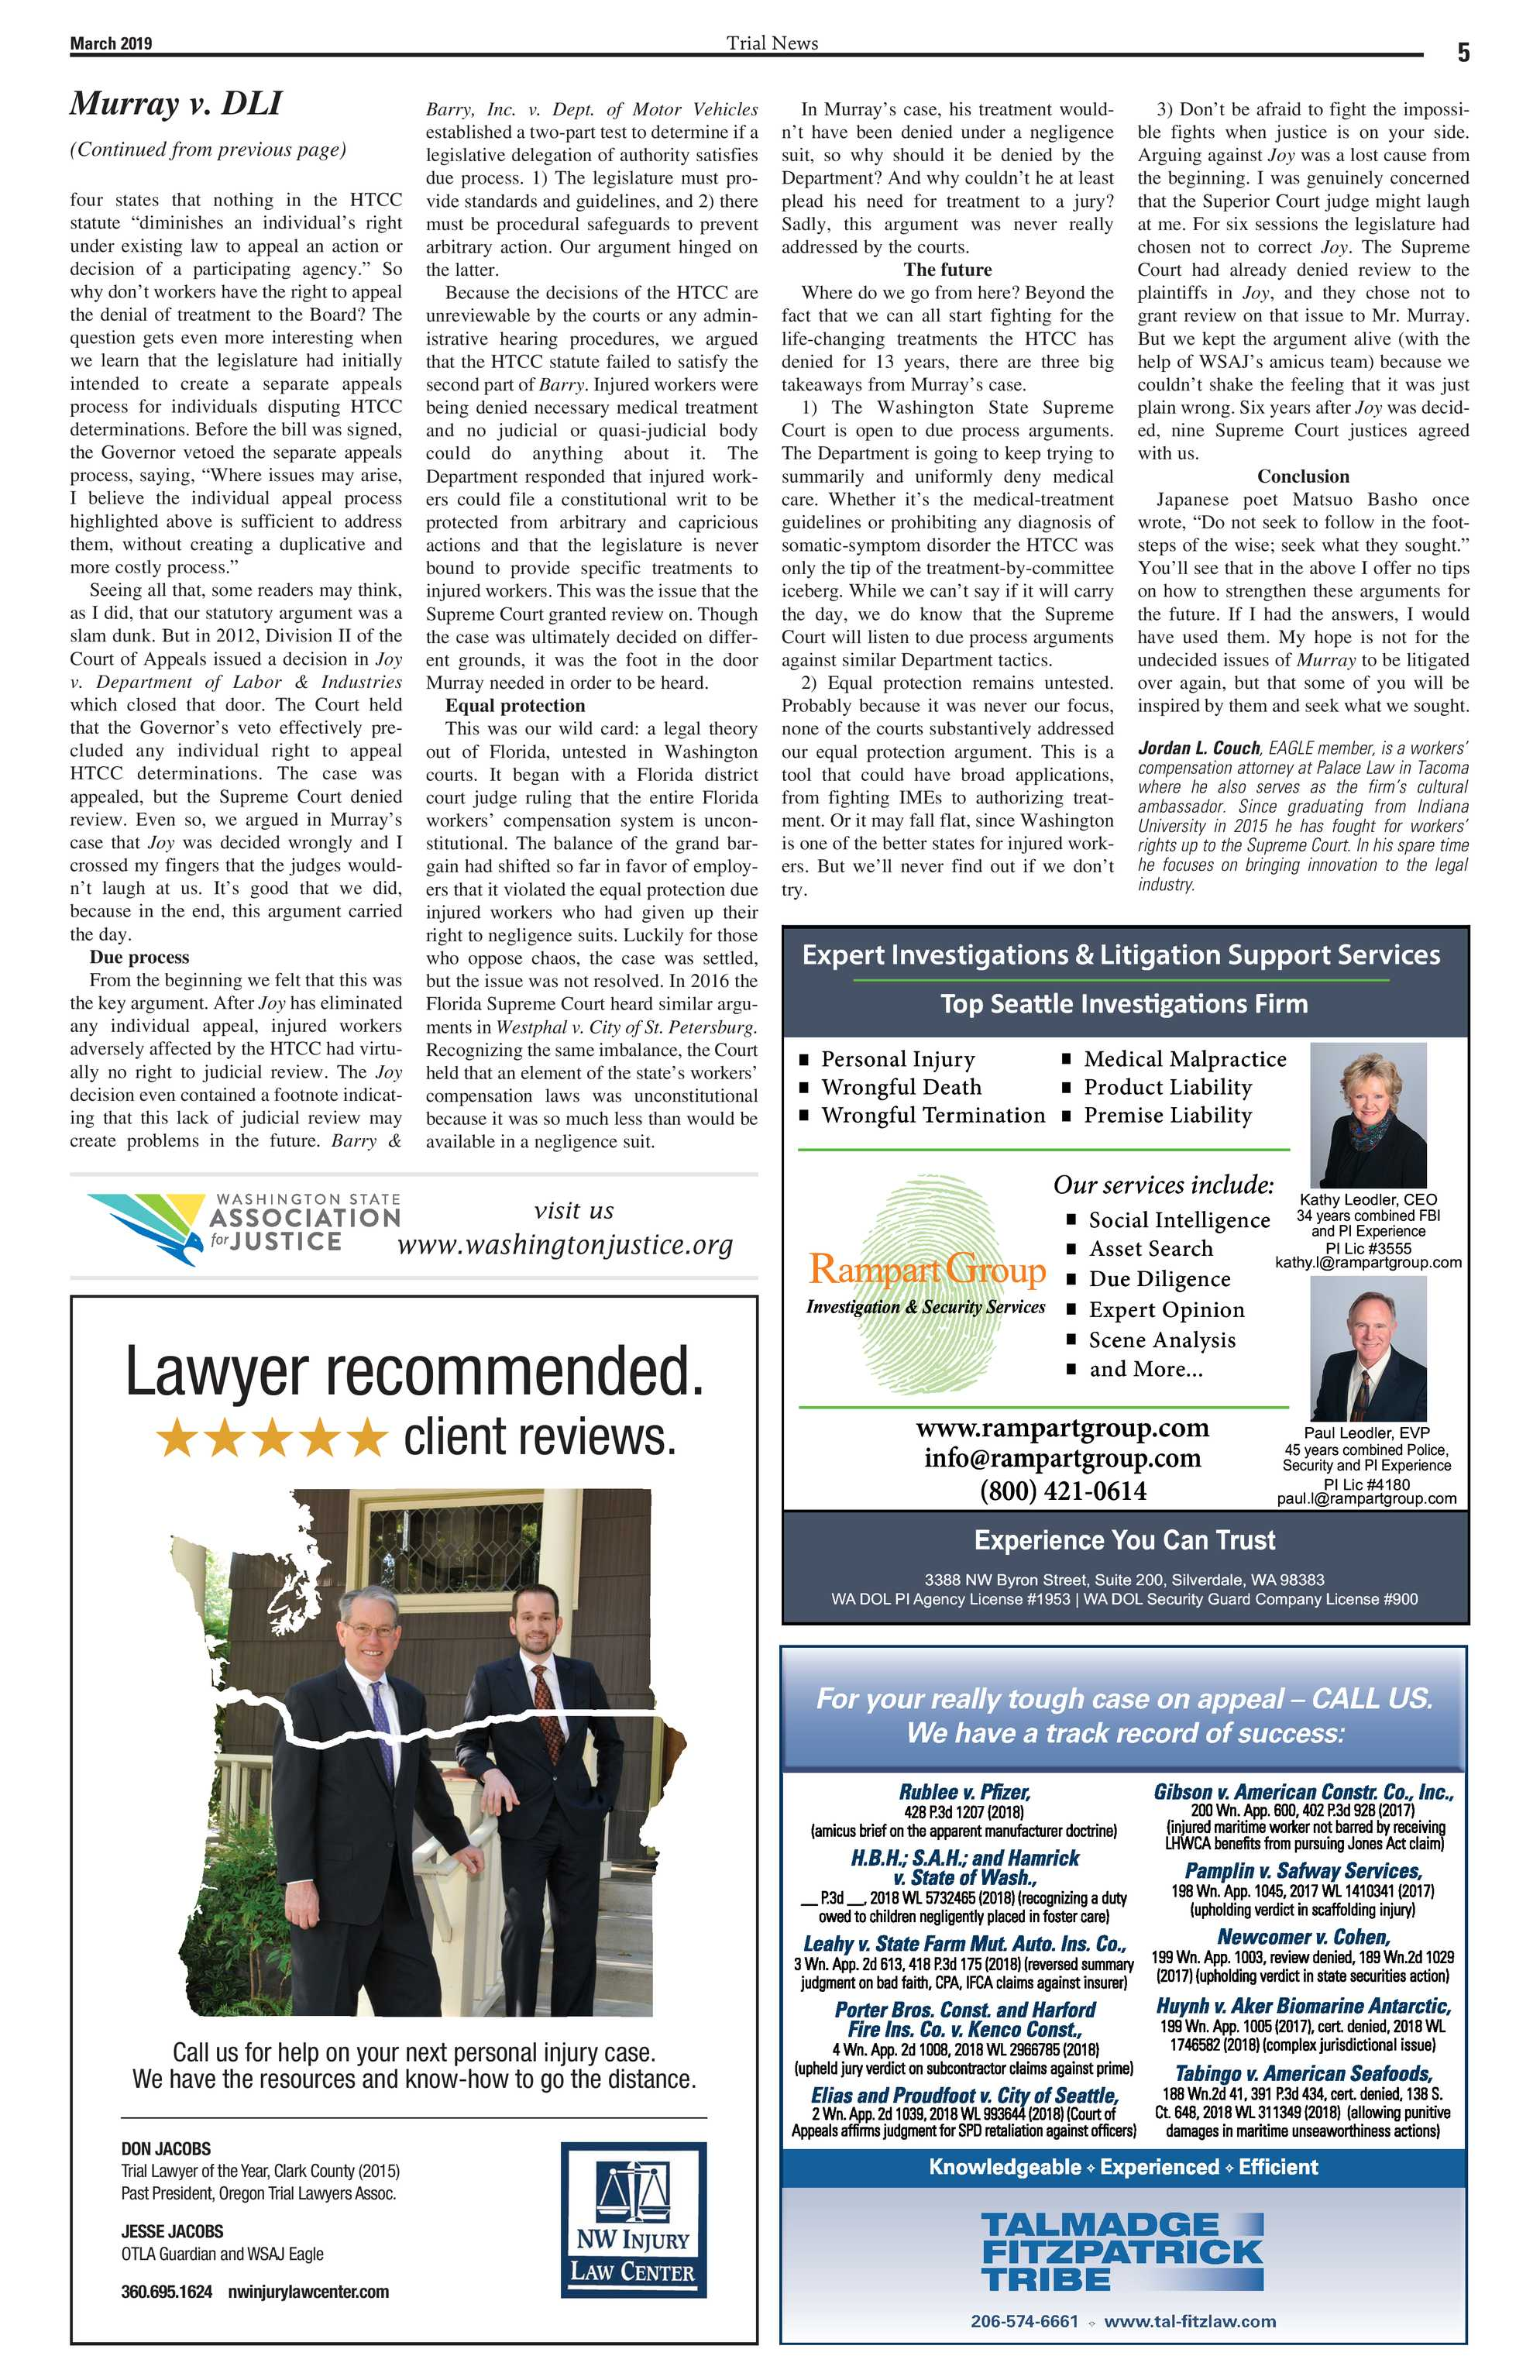 Trial News - March 2019 - page 5